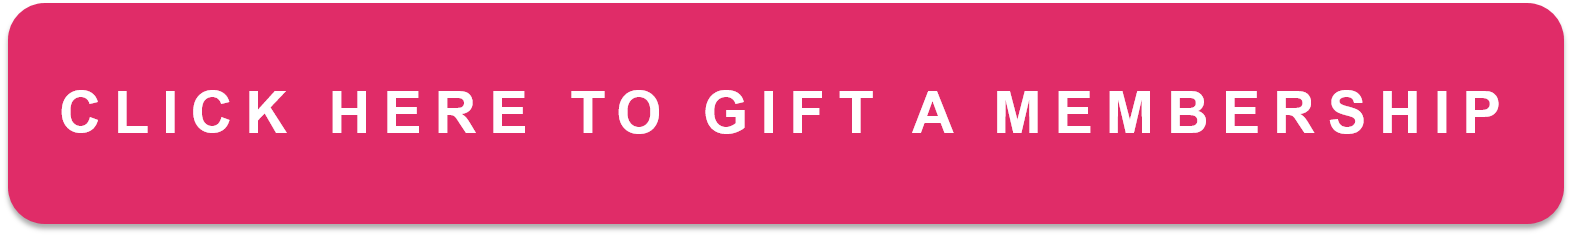 Click here to gift a membership